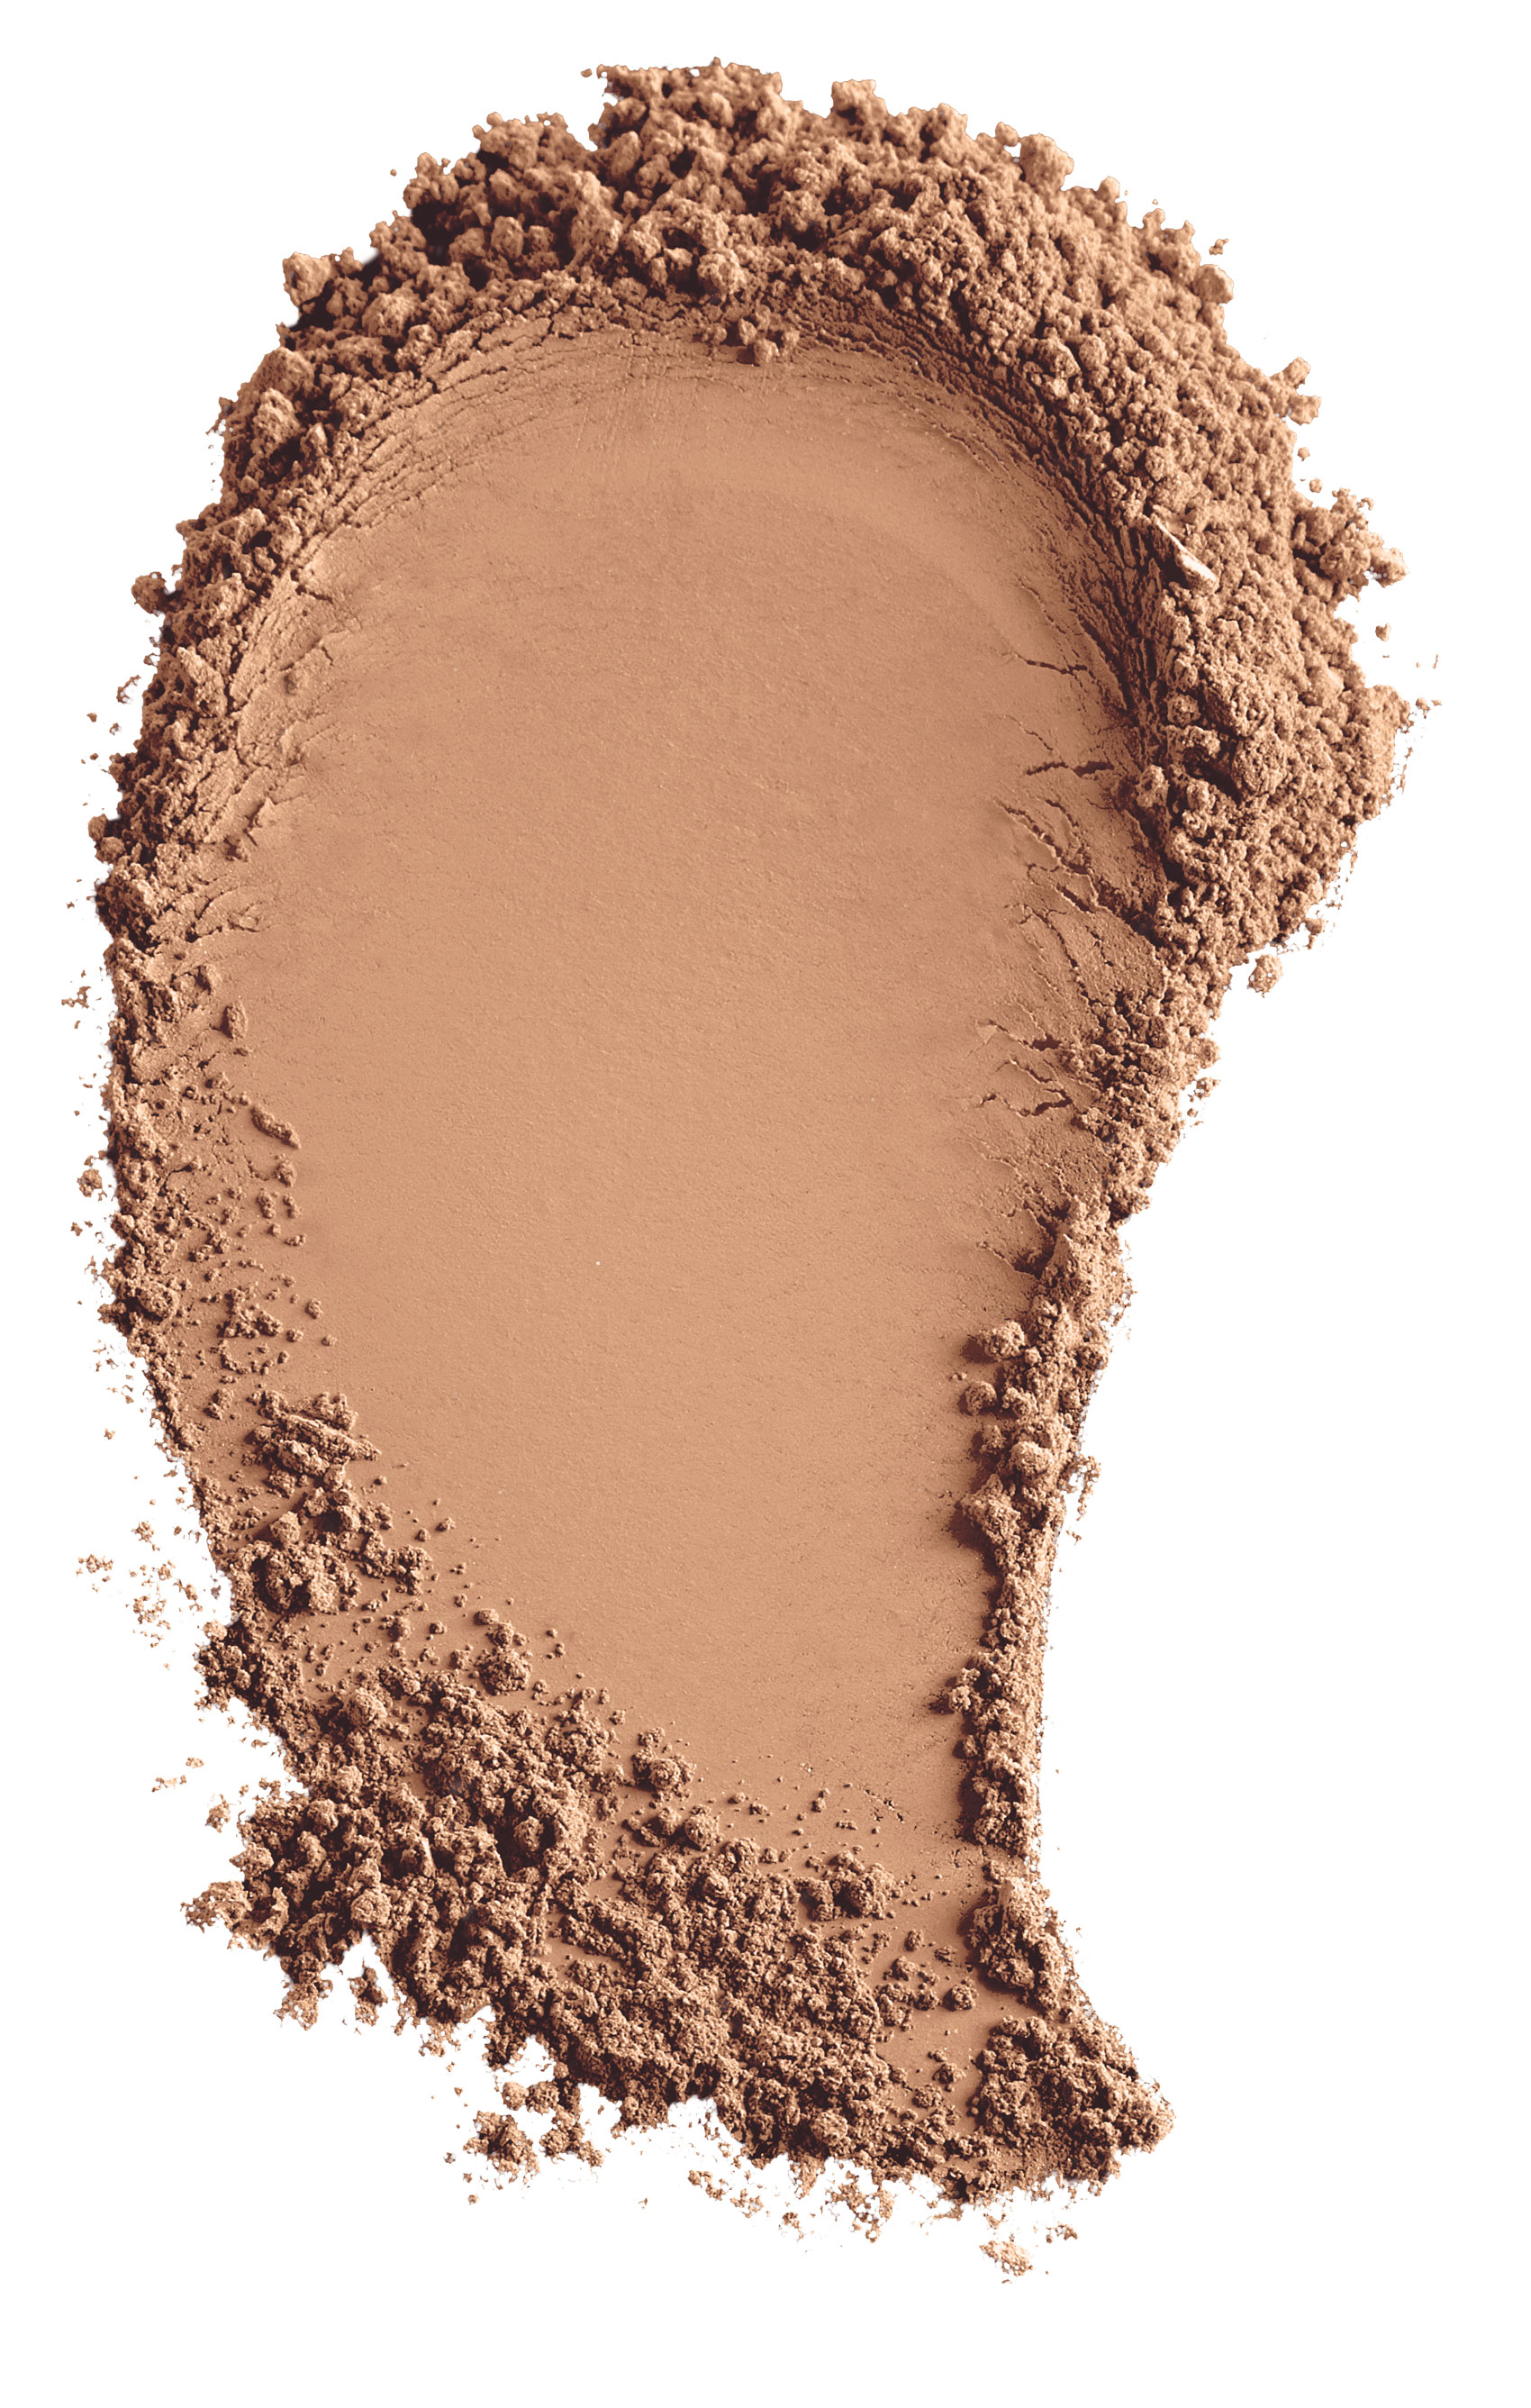 _Foundation_Matte_Medium_Tan_Smear